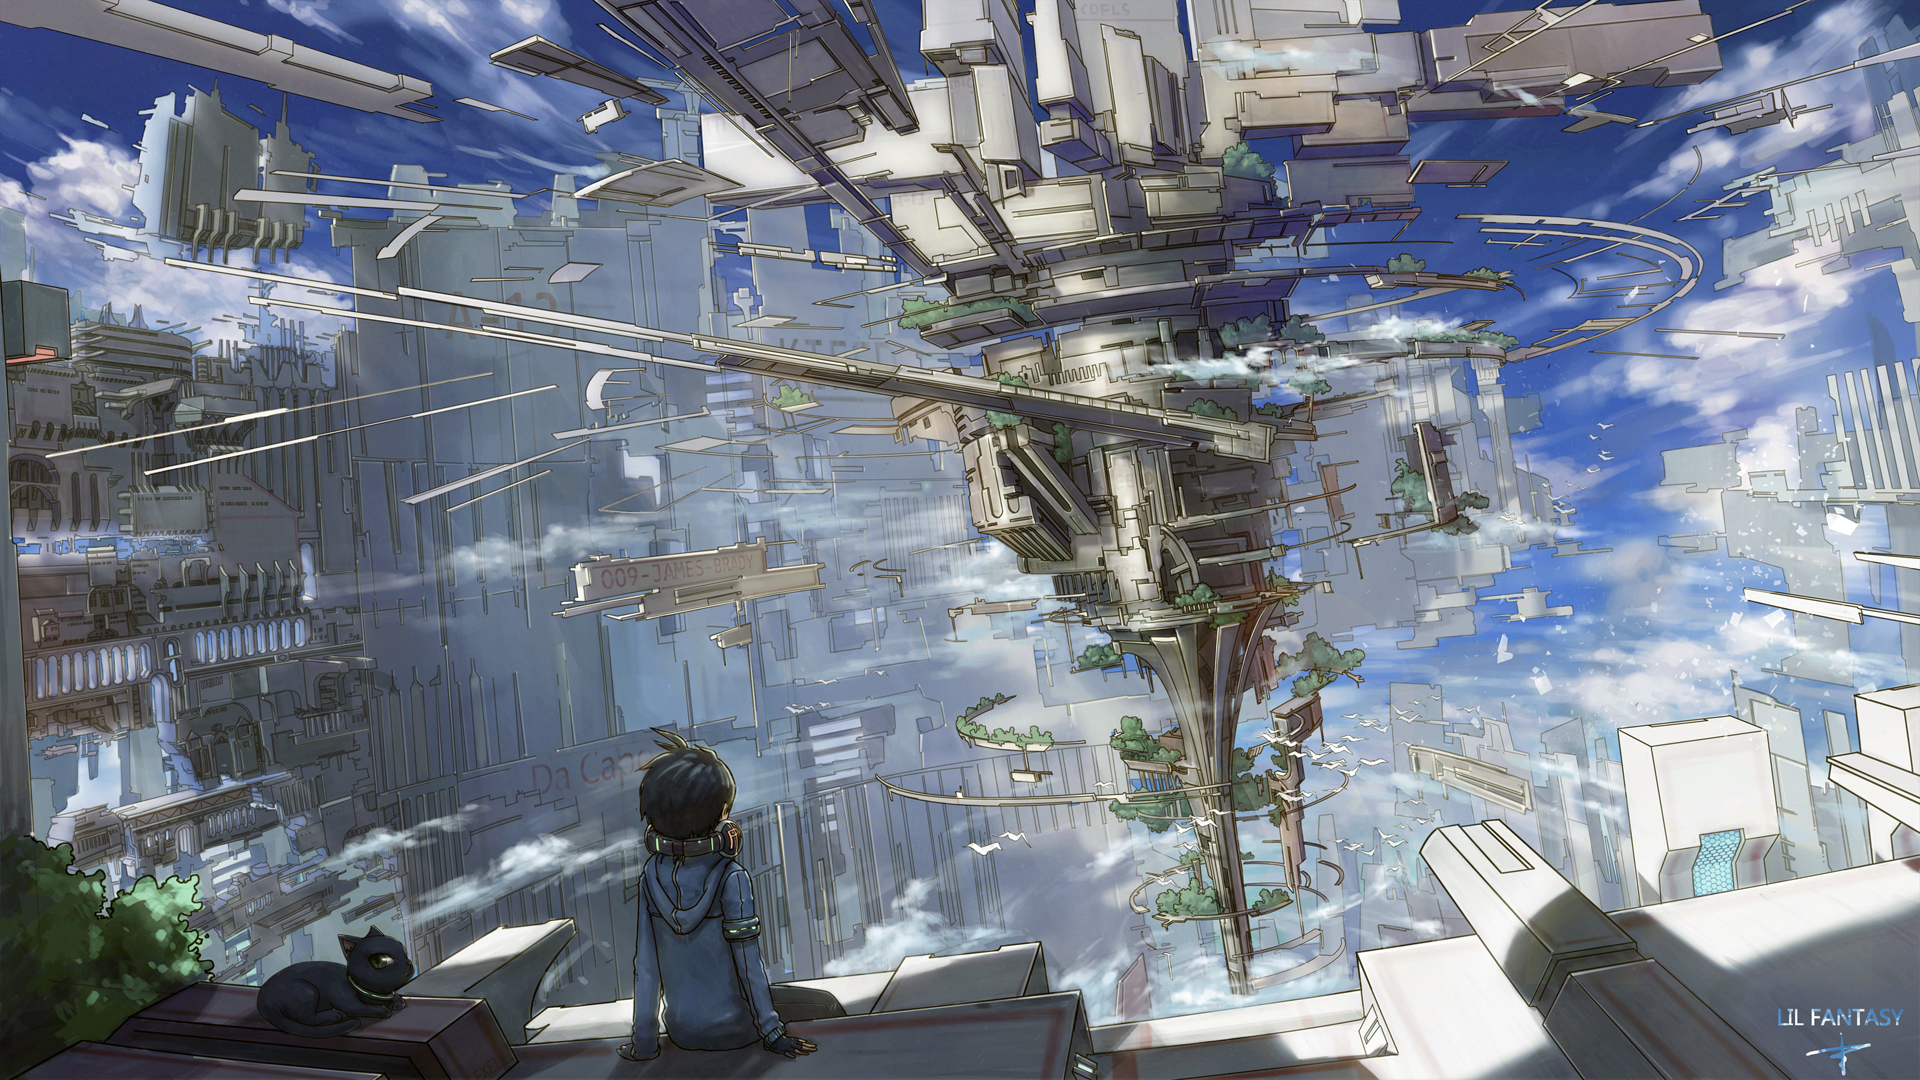 Futurist Anime Girl Wallpaper Original Hd Wallpaper Background Image 1920x1080 Id